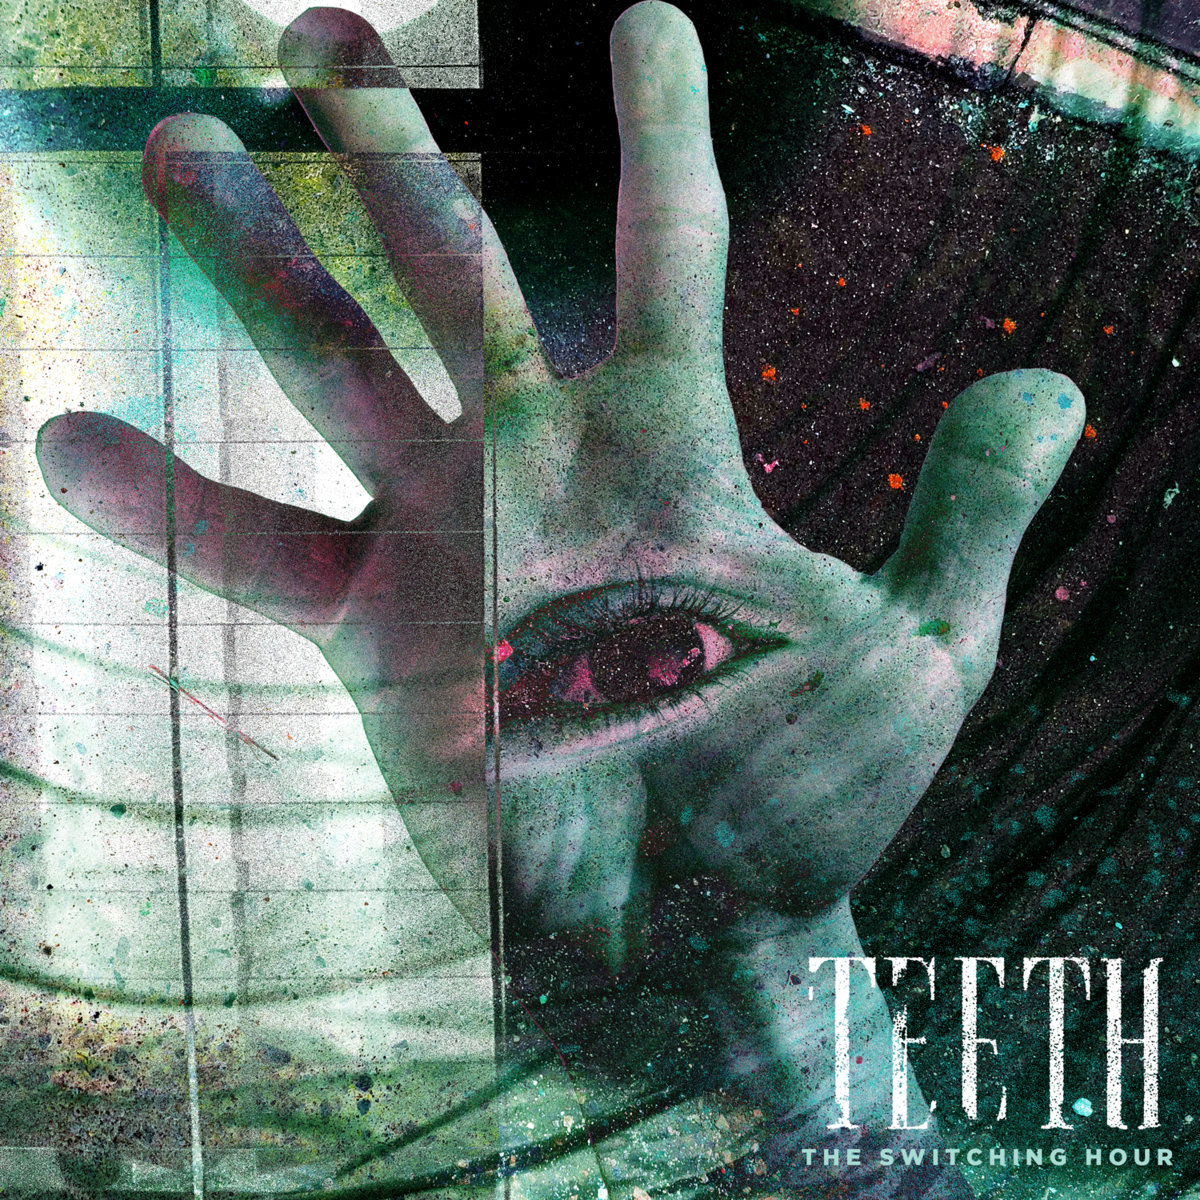 Teeth - The Switching Hour [Single] (2018)